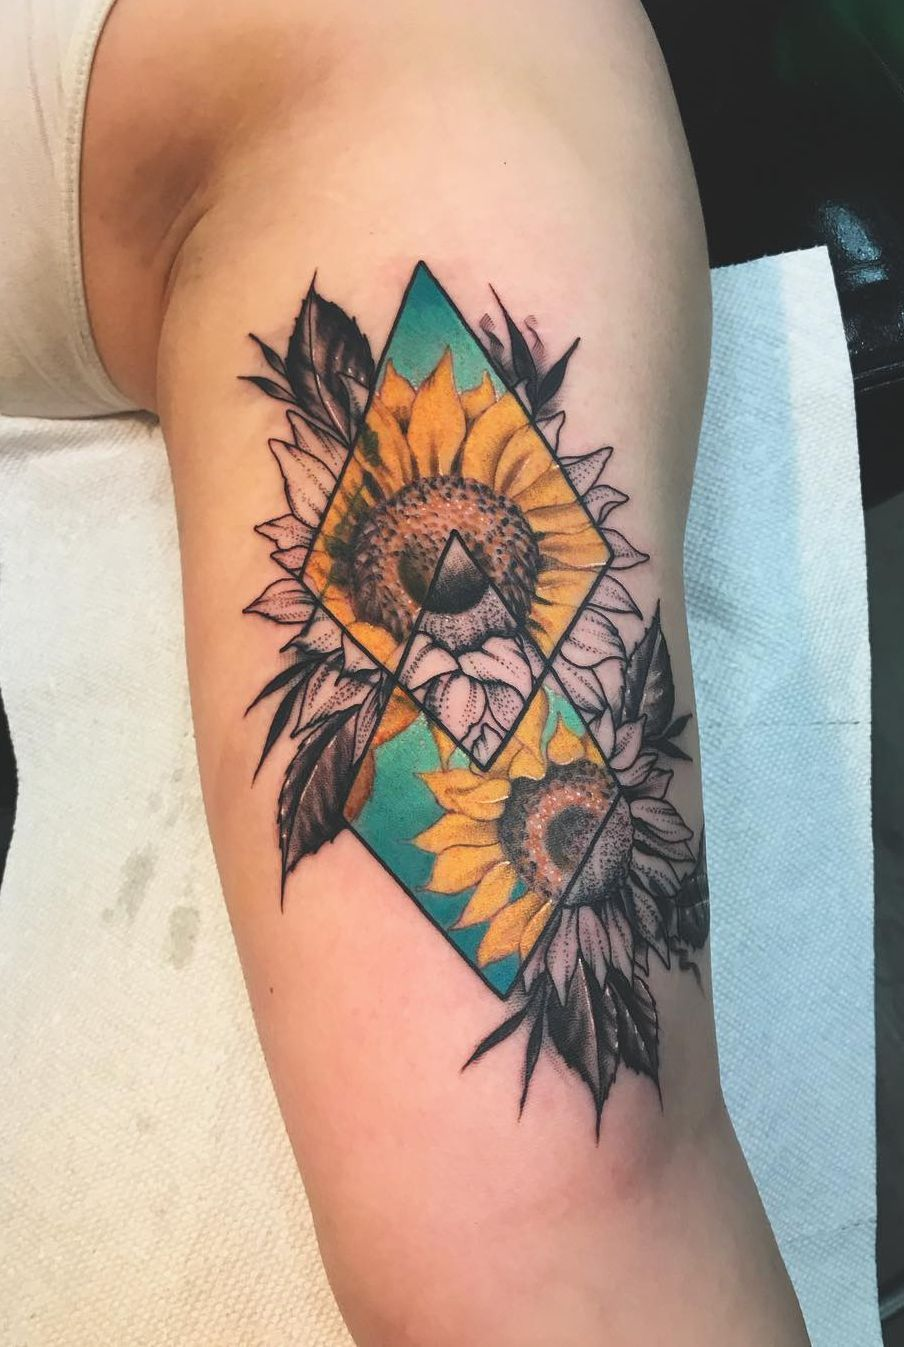 Celebrate the Beauty of Nature with these Inspirational Sunflower Tattoos | Sonnenblumen tattoos, Sonnenblume tattoo schulter, Bff tattoos